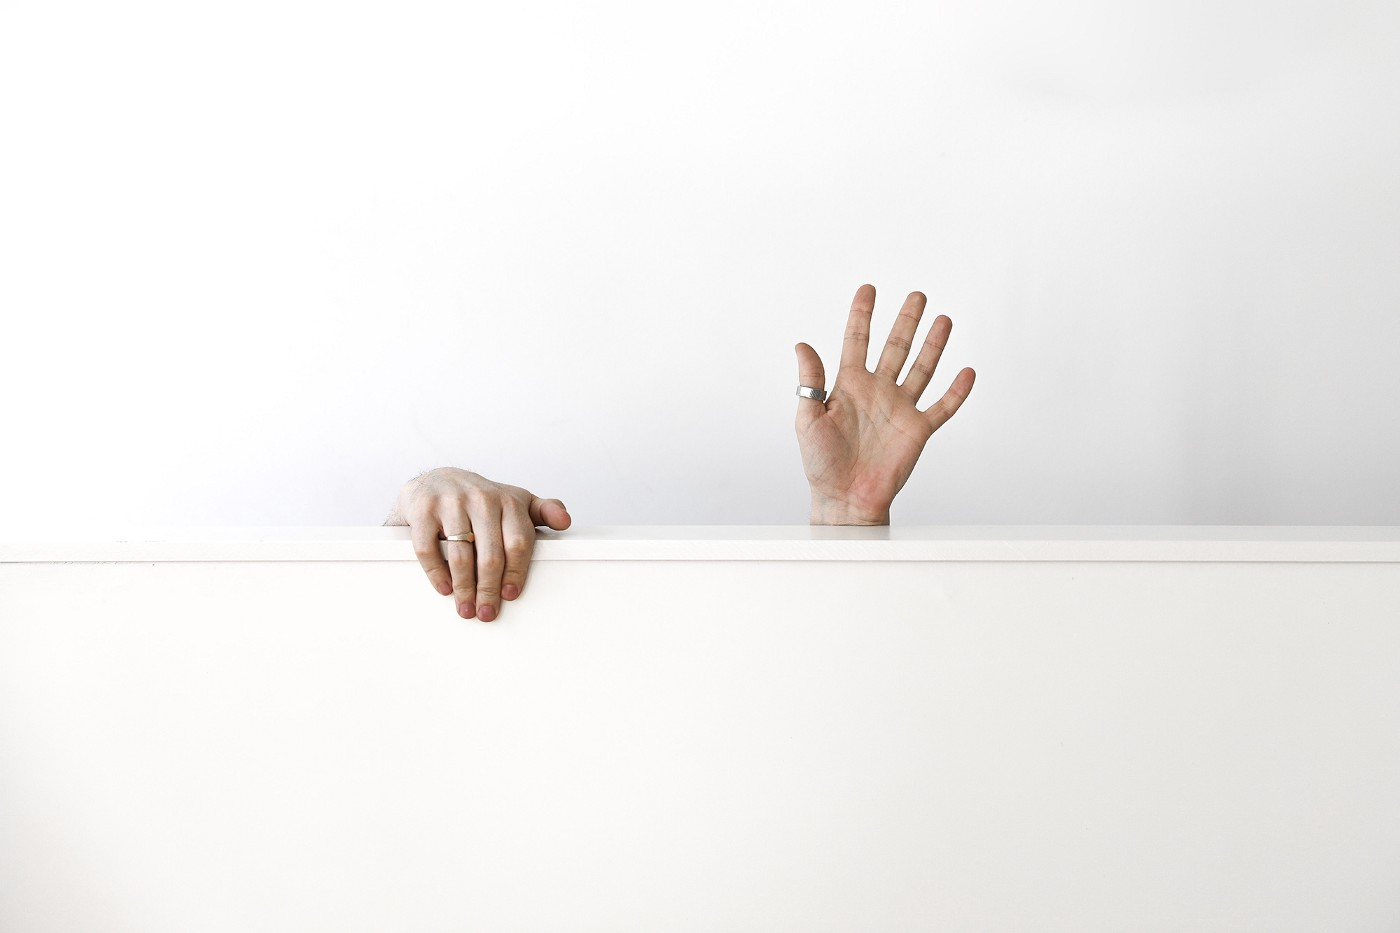 Hello! We're Dejima. This is an image of one of the founders hands waving at you.